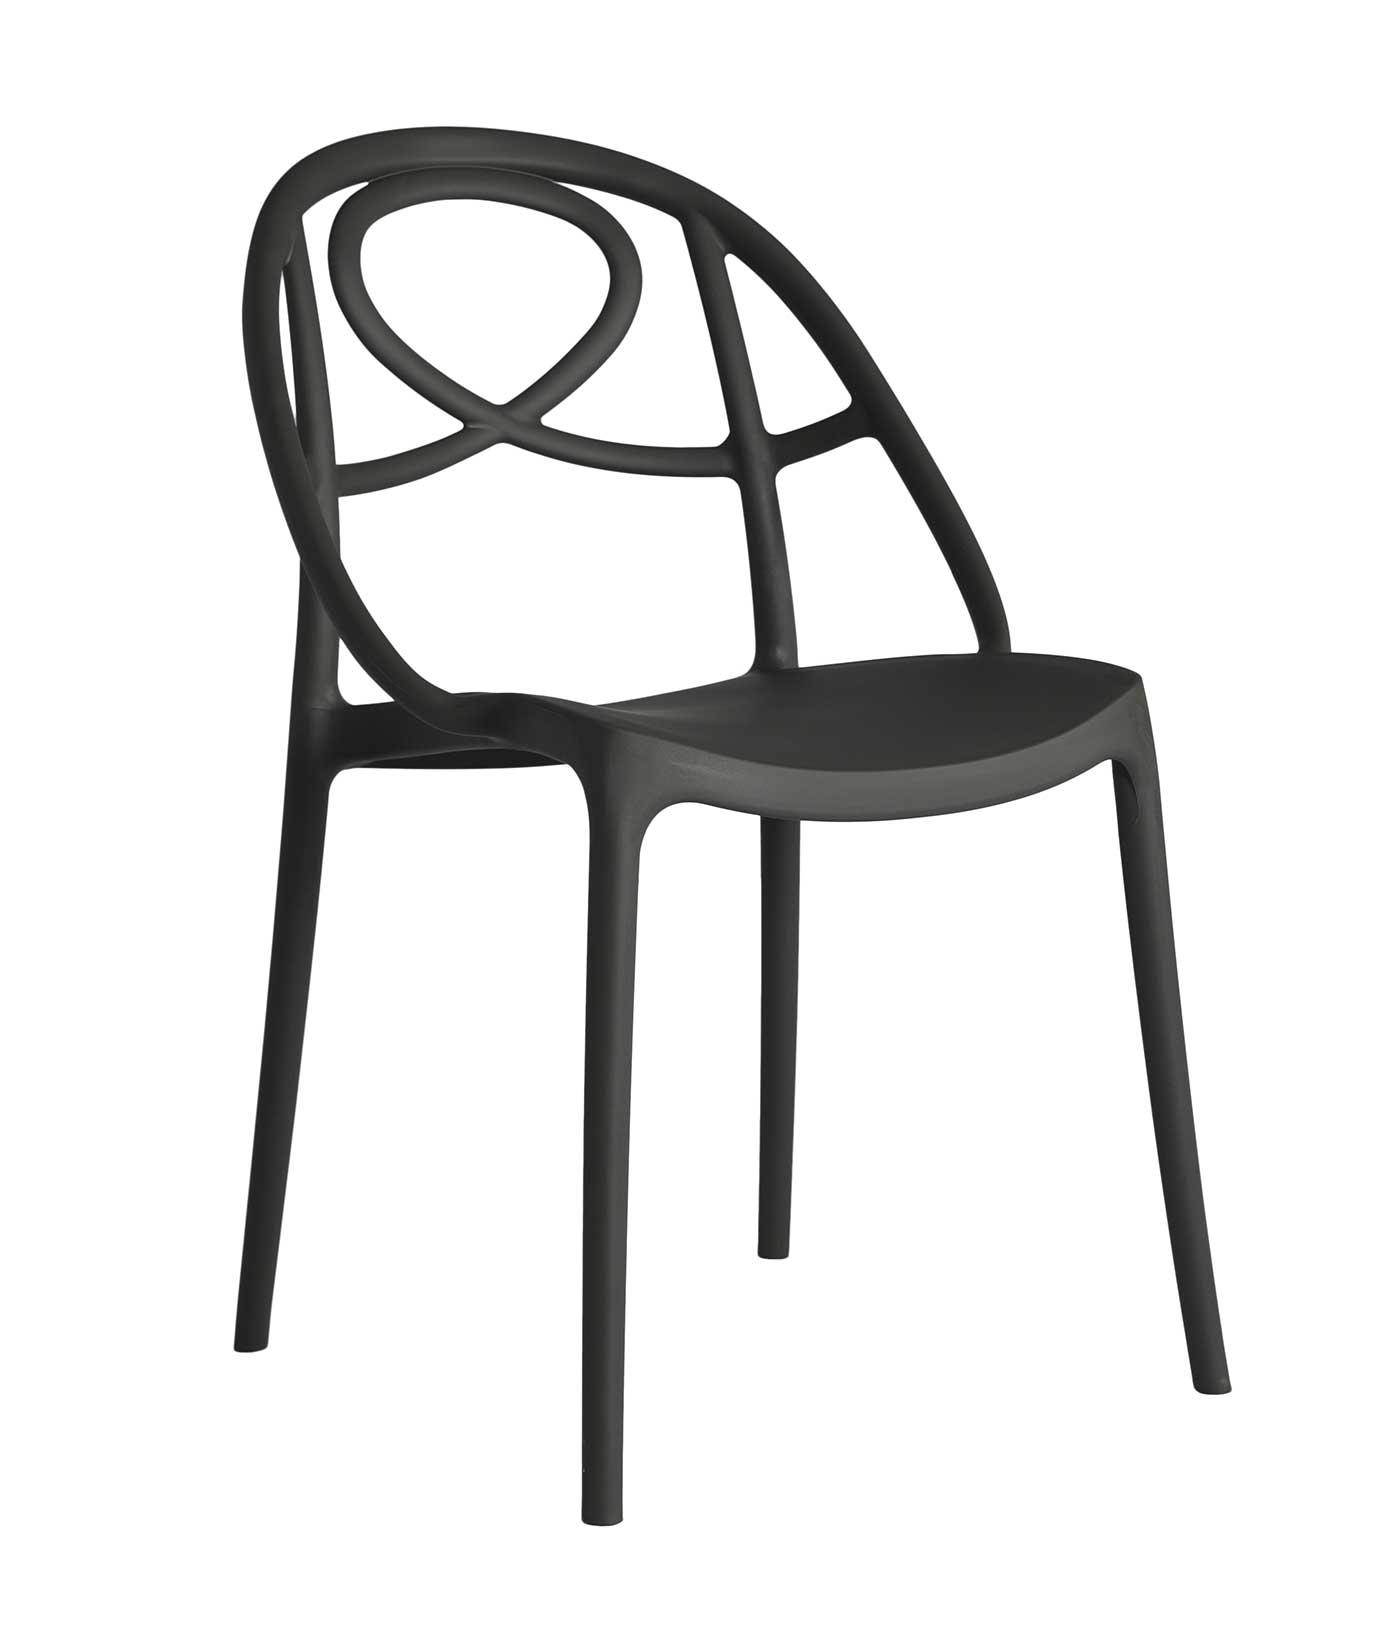 Arabesque is a polypropylene chair entirely handcrafted in Italy. This handcrafted polypropylene chair is perfect for any home, office or outdoor space.